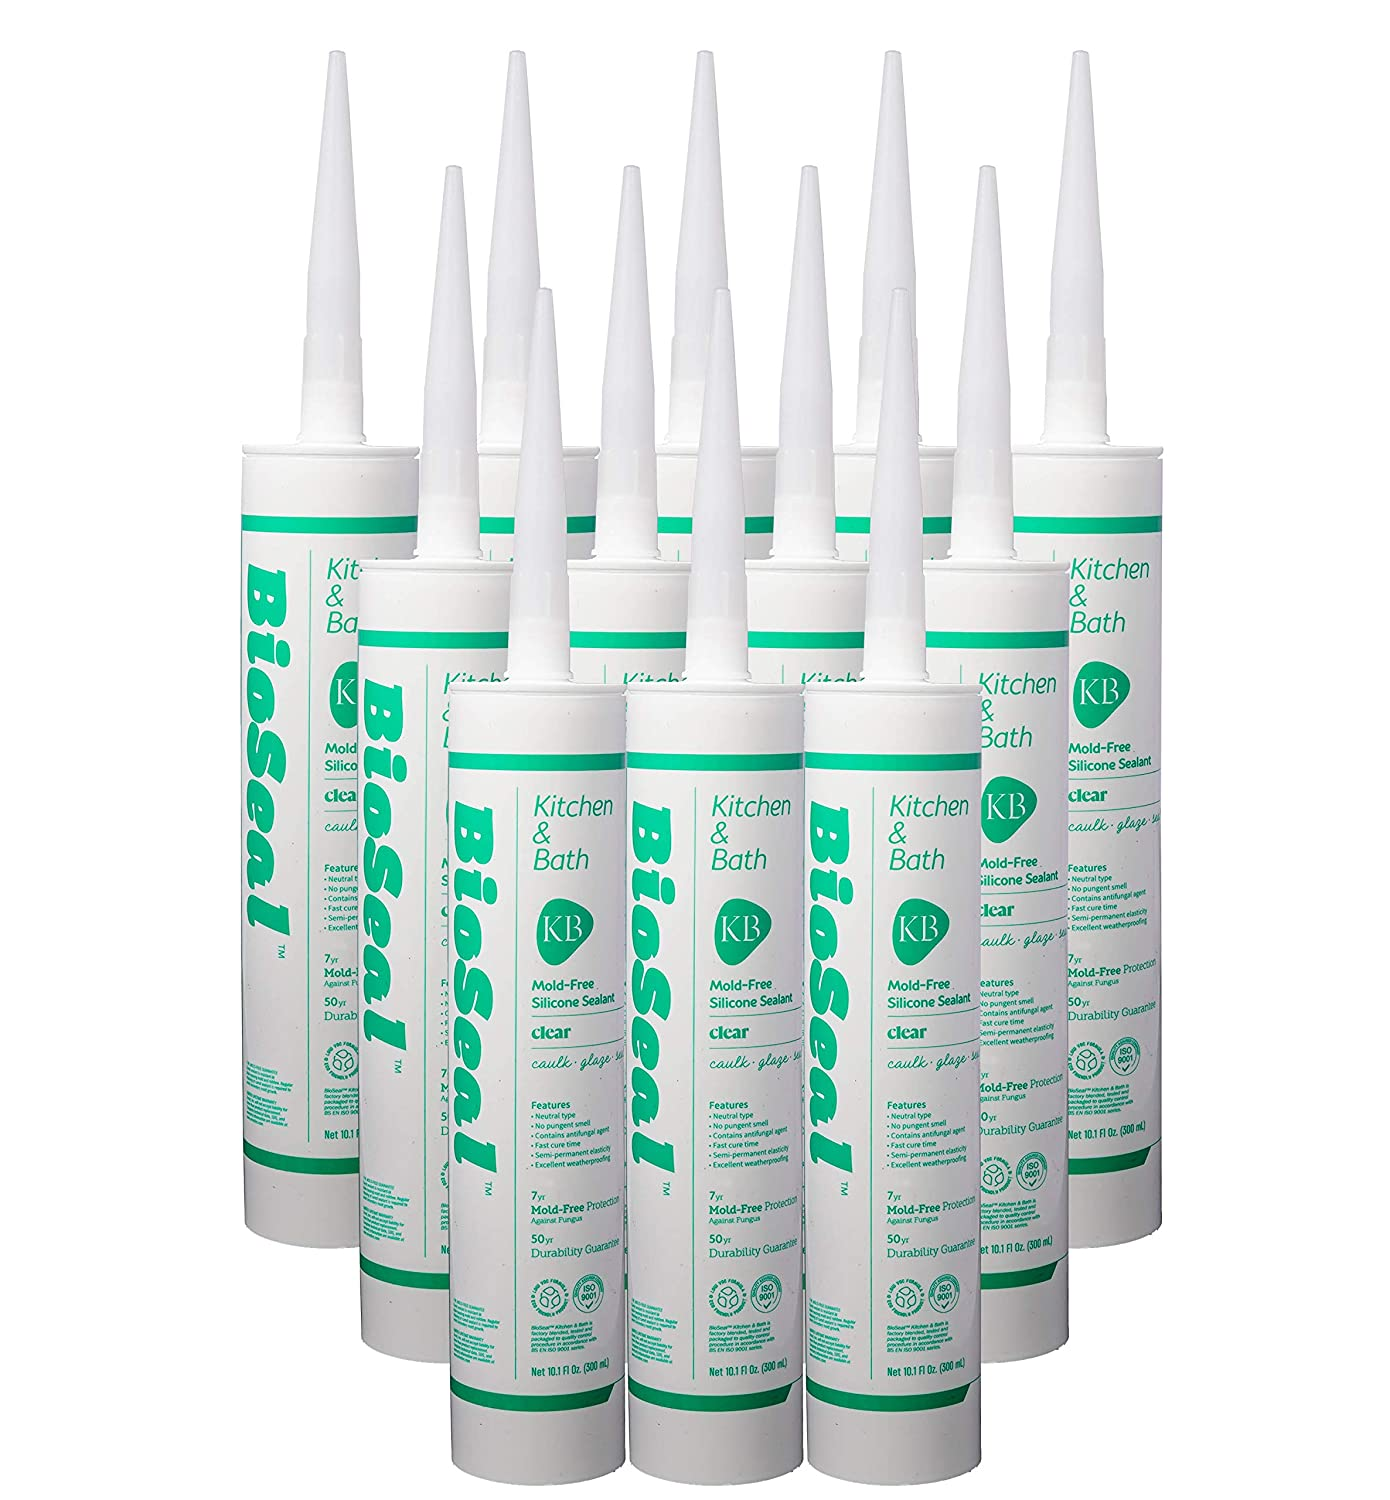 Minneapolis Mall Zered White BioSeal Silicone Sealant Mold Caulk and Waterproof Max 59% OFF